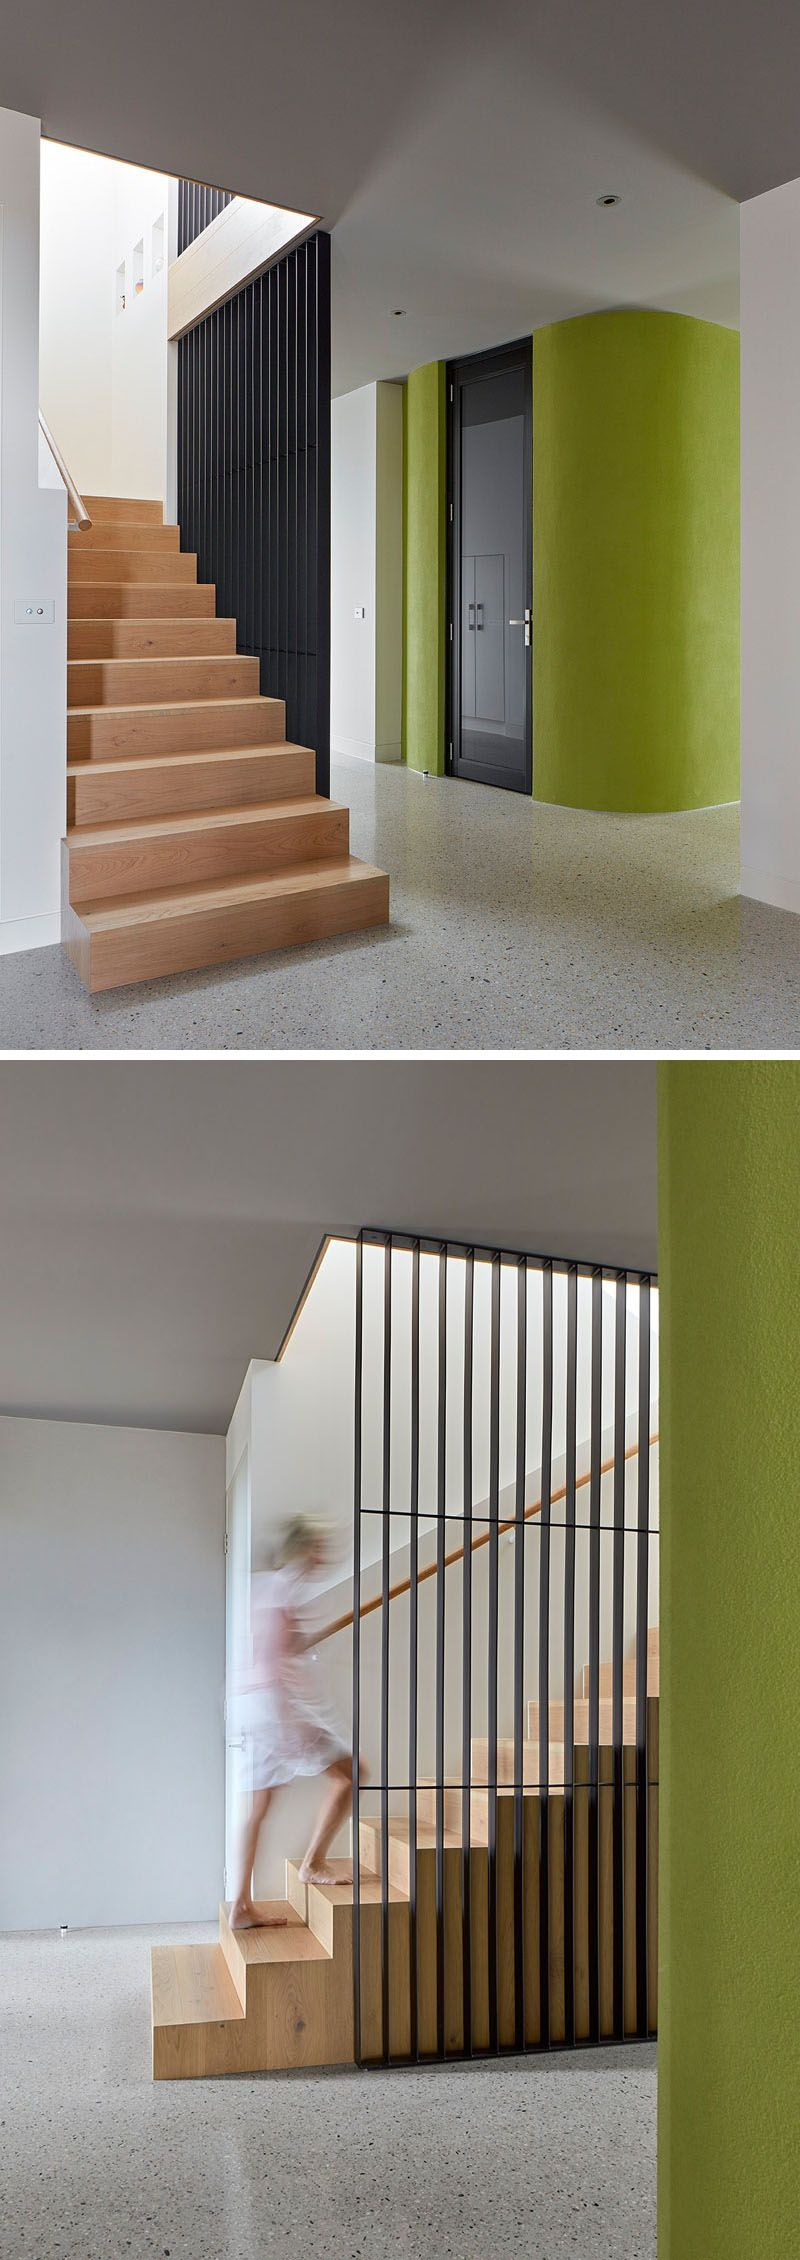 Home interior stairs a house overlooking the trees designed for a semiretired couple and